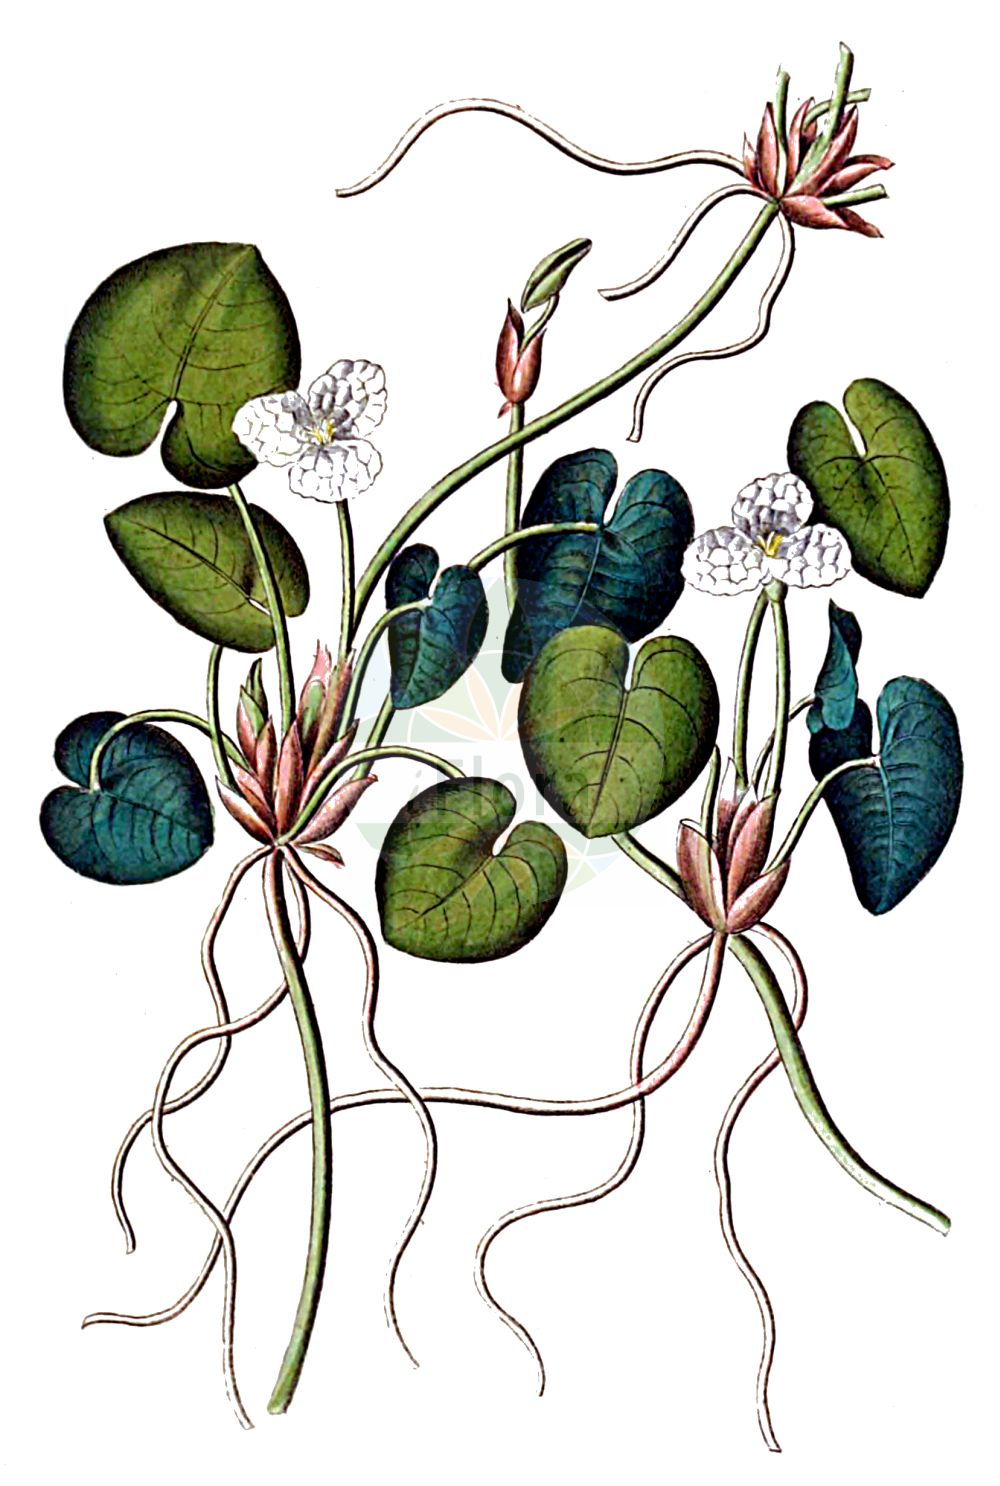 Historische Abbildung von Hydrocharis morsus-ranae (Europaeischer Froschbiss - Frogbit). Das Bild zeigt Blatt, Bluete, Frucht und Same. ---- Historical Drawing of Hydrocharis morsus-ranae (Europaeischer Froschbiss - Frogbit).The image is showing leaf, flower, fruit and seed.(Hydrocharis morsus-ranae,Europaeischer Froschbiss,Frogbit,Hydrocharis morsus-ranae,Europaeischer Froschbiss,Froschbiss,Frogbit,European Frogbit,Common Frogbit,Hydrocharis,Froschbiss,Frogbit,Hydrocharitaceae,Froschbissgewaechse,Frogbit family,Blatt,Bluete,Frucht,Same,leaf,flower,fruit,seed,Dietrich (1833-1844))